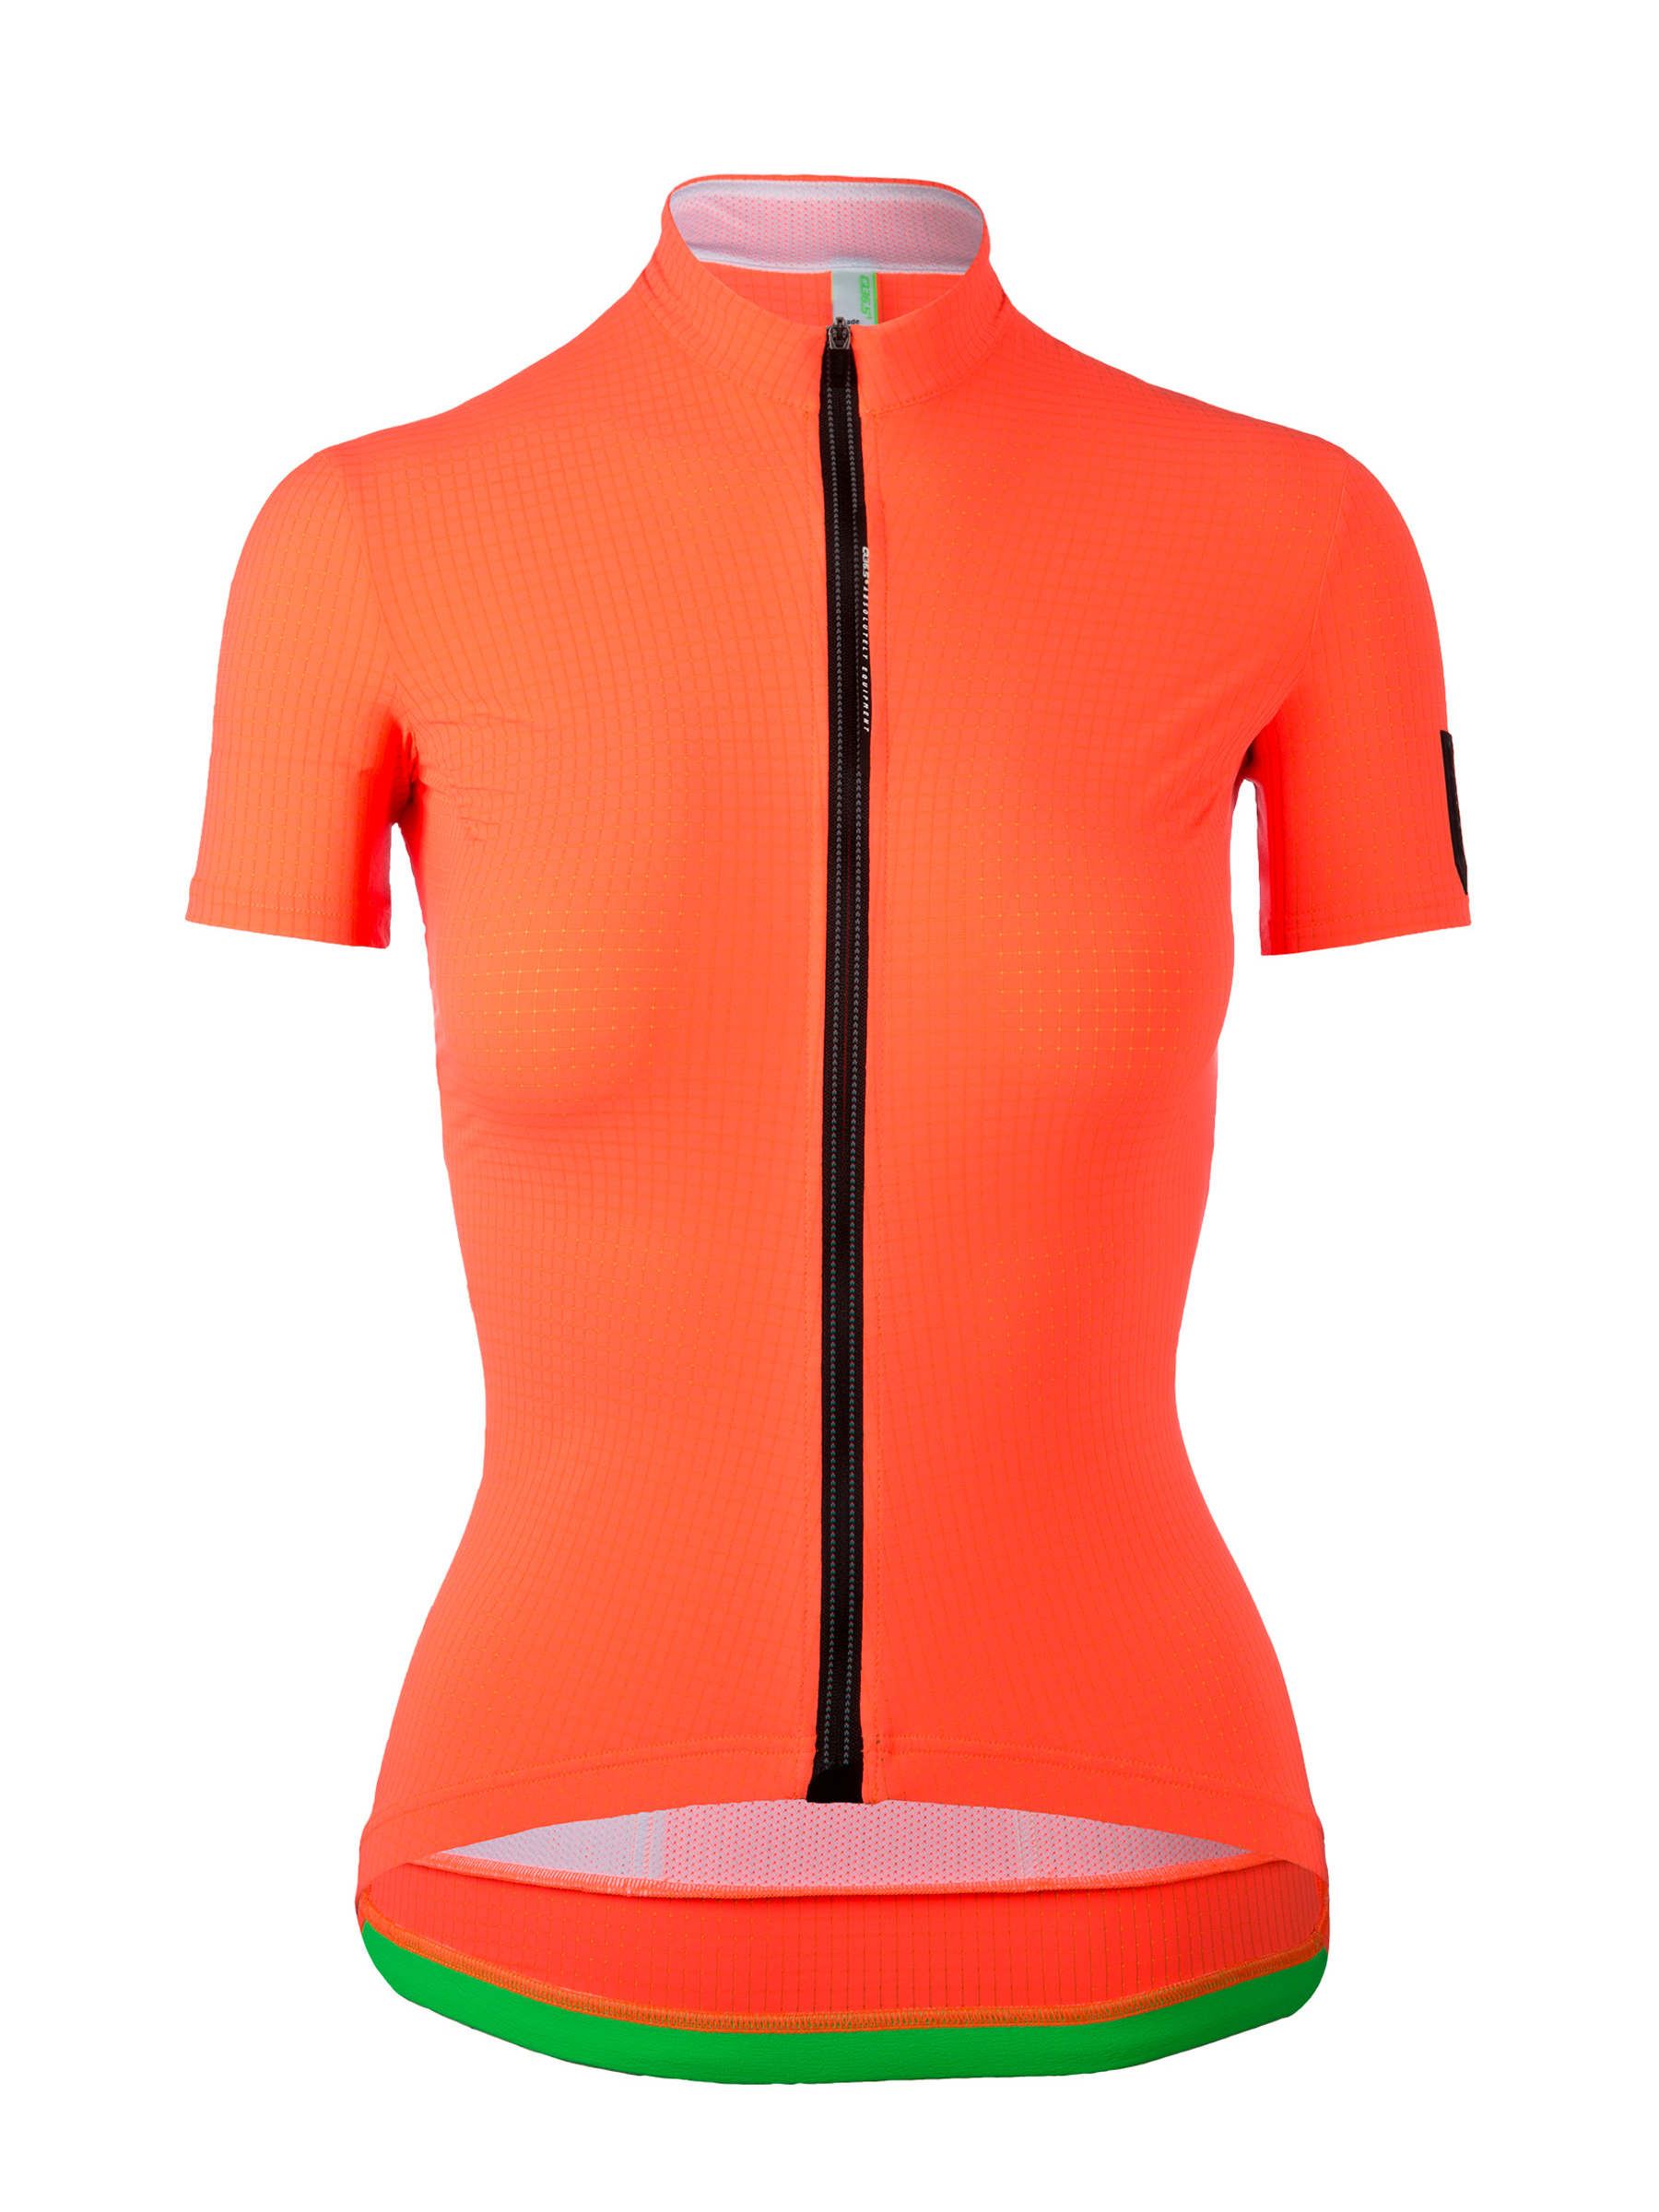 Womens cycling Jersey short sleeve L1 Lady Pinstripe orange Q36.5 - back